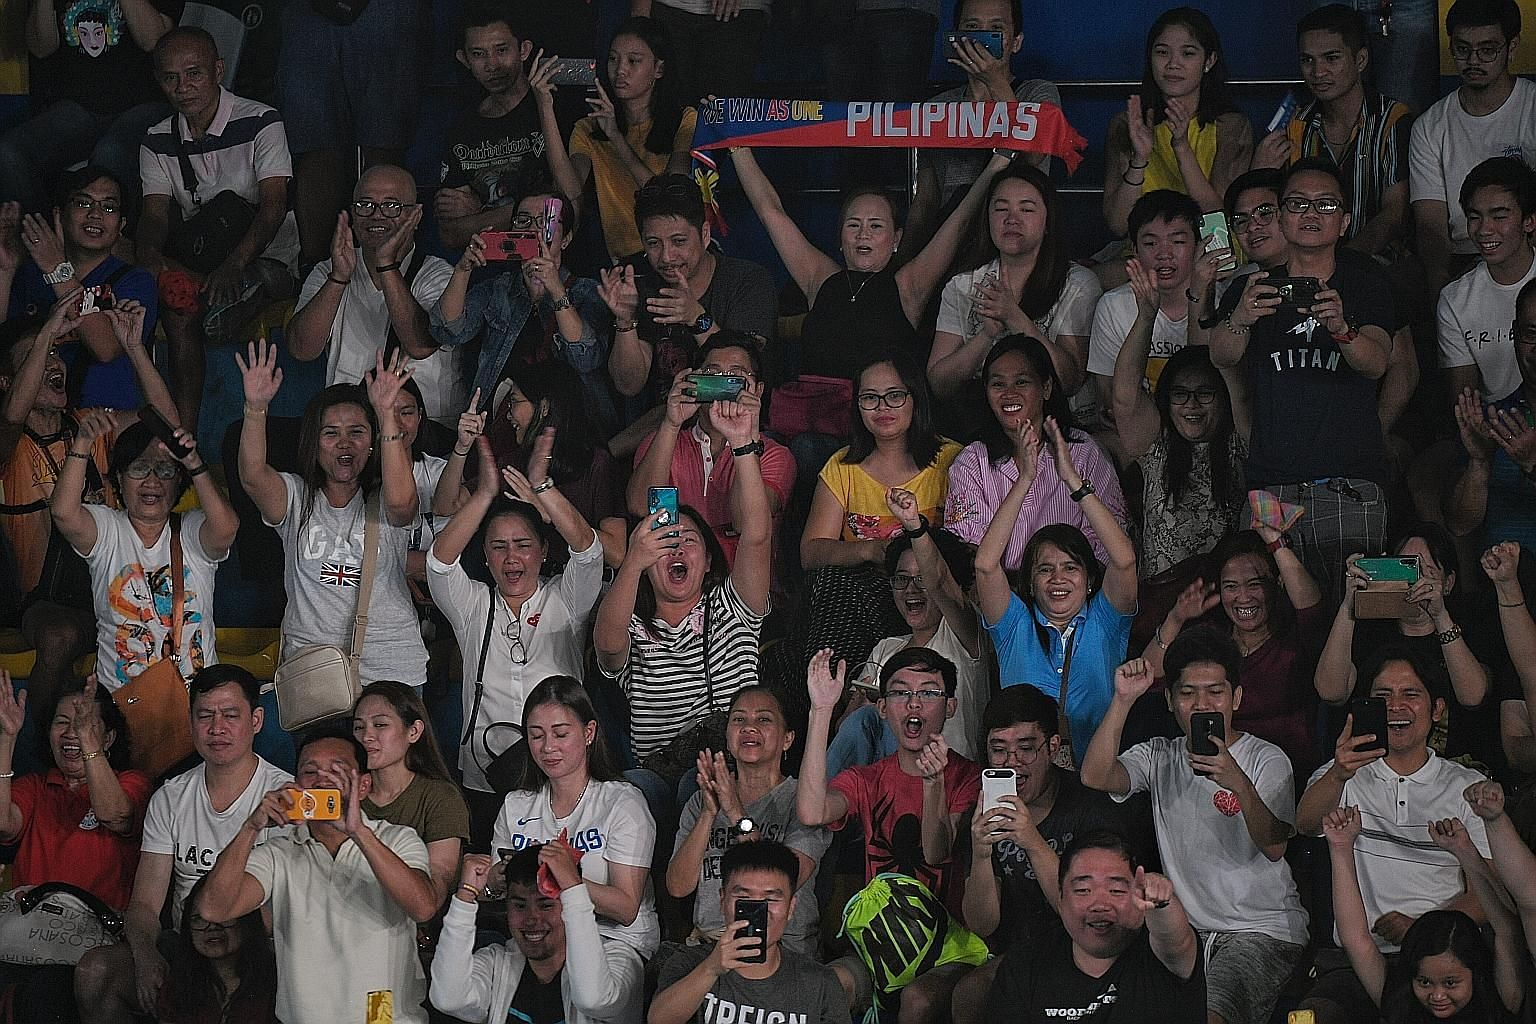 Spectators cheering during the badminton matches at the Muntinlupa Sports Complex in Manila on Thursday. ST PHOTO: MARK CHEONG